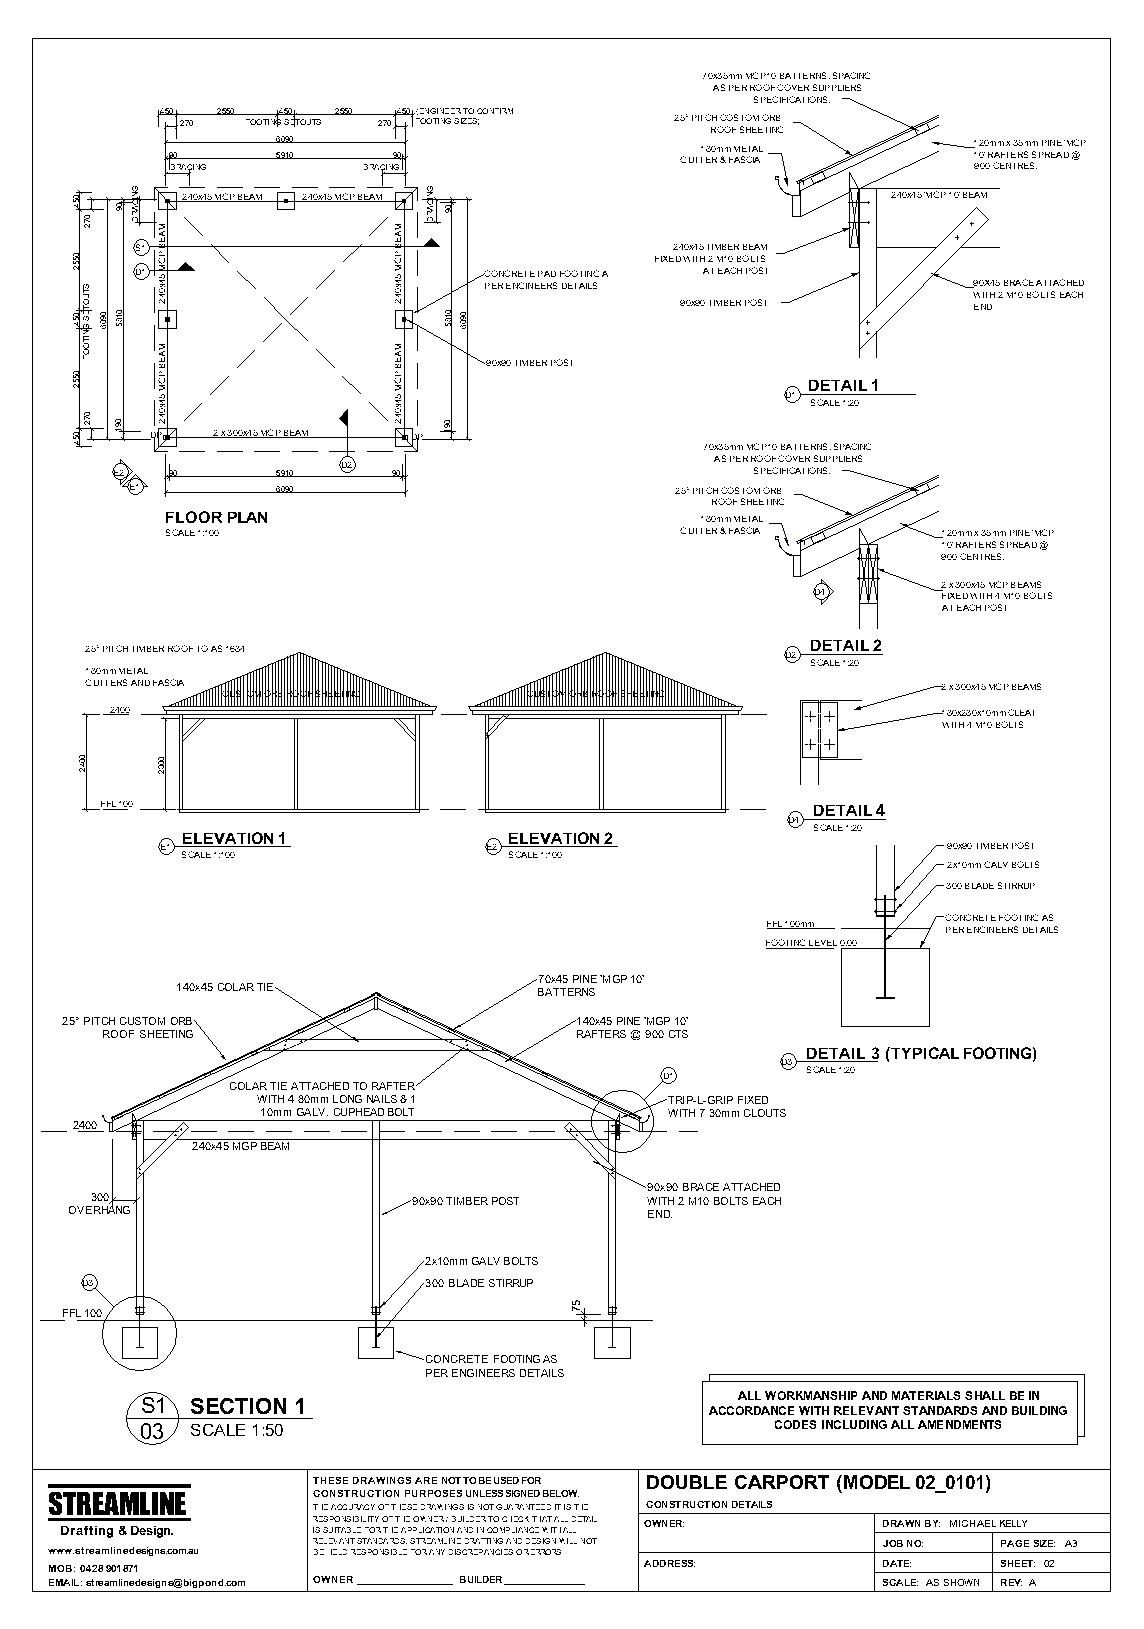 Carport Construction Plans It Should Be At Least 12 Feet Wide And 20 Feet  Long For One Car Free Carport Plans With Step By Step Instructions Barn The  Actual ...